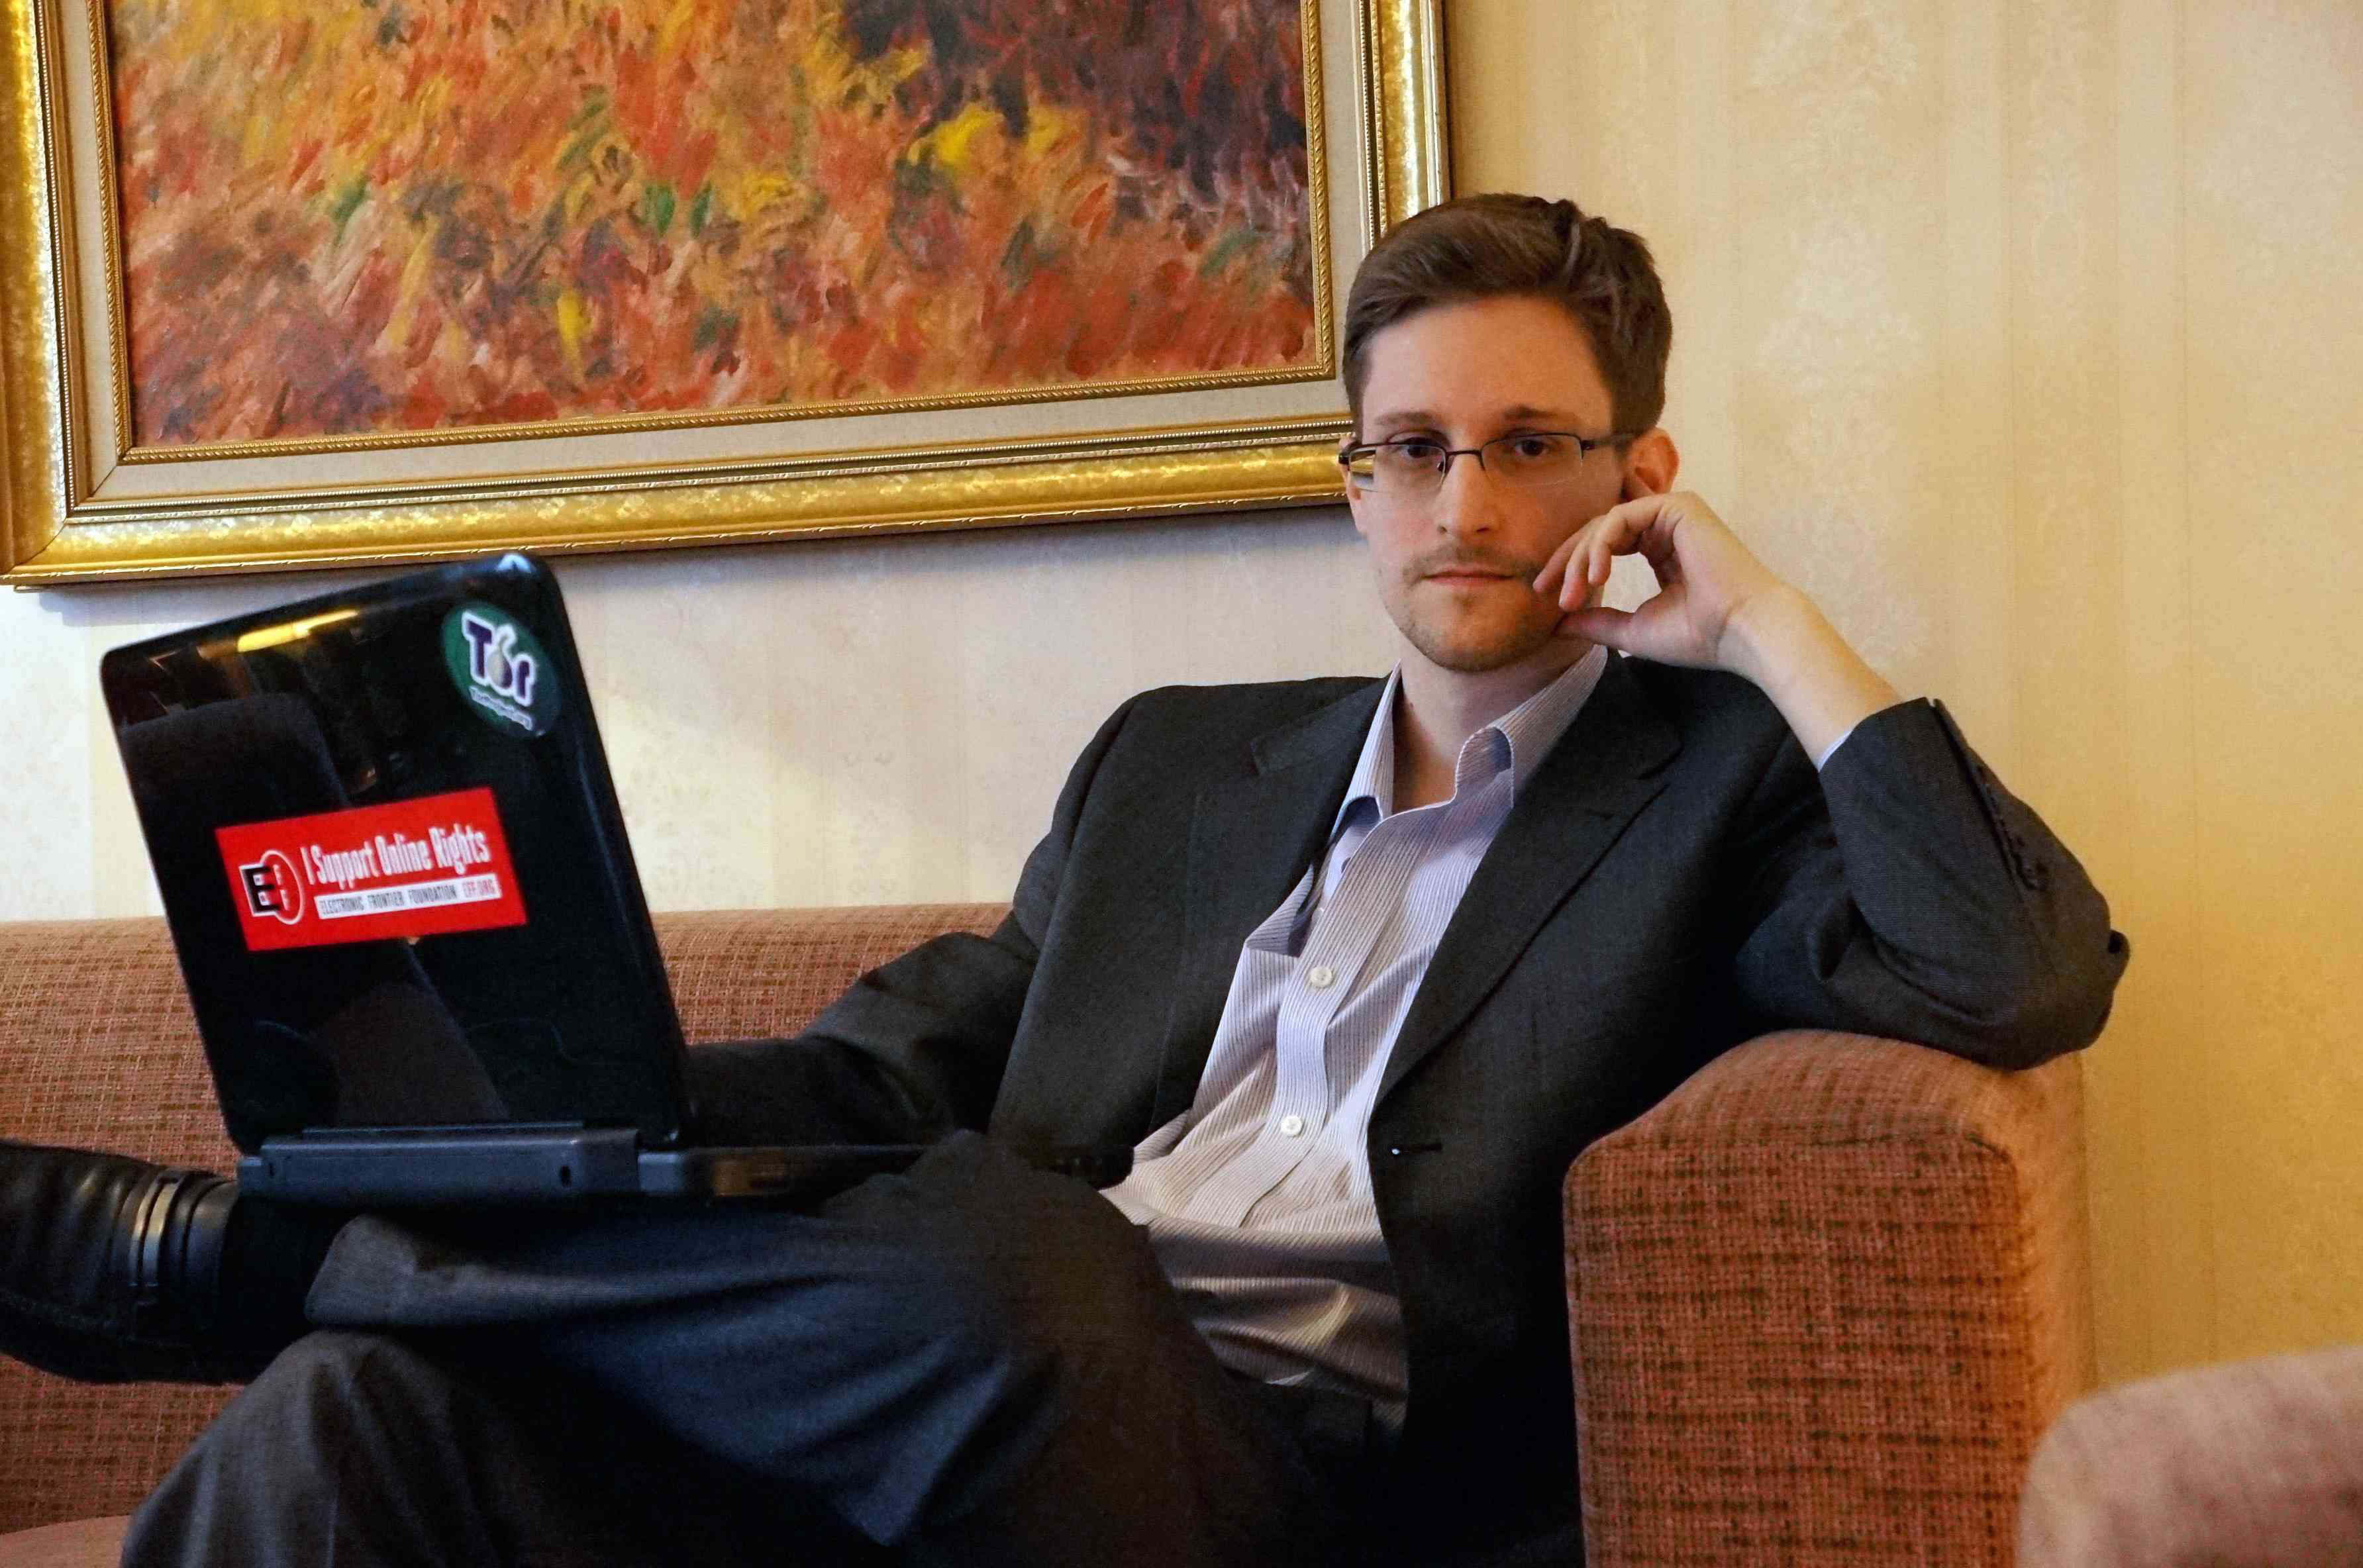 Edward Snowden poses for a photo during an interview in an undisclosed location in December 2013 in Moscow, Russia.